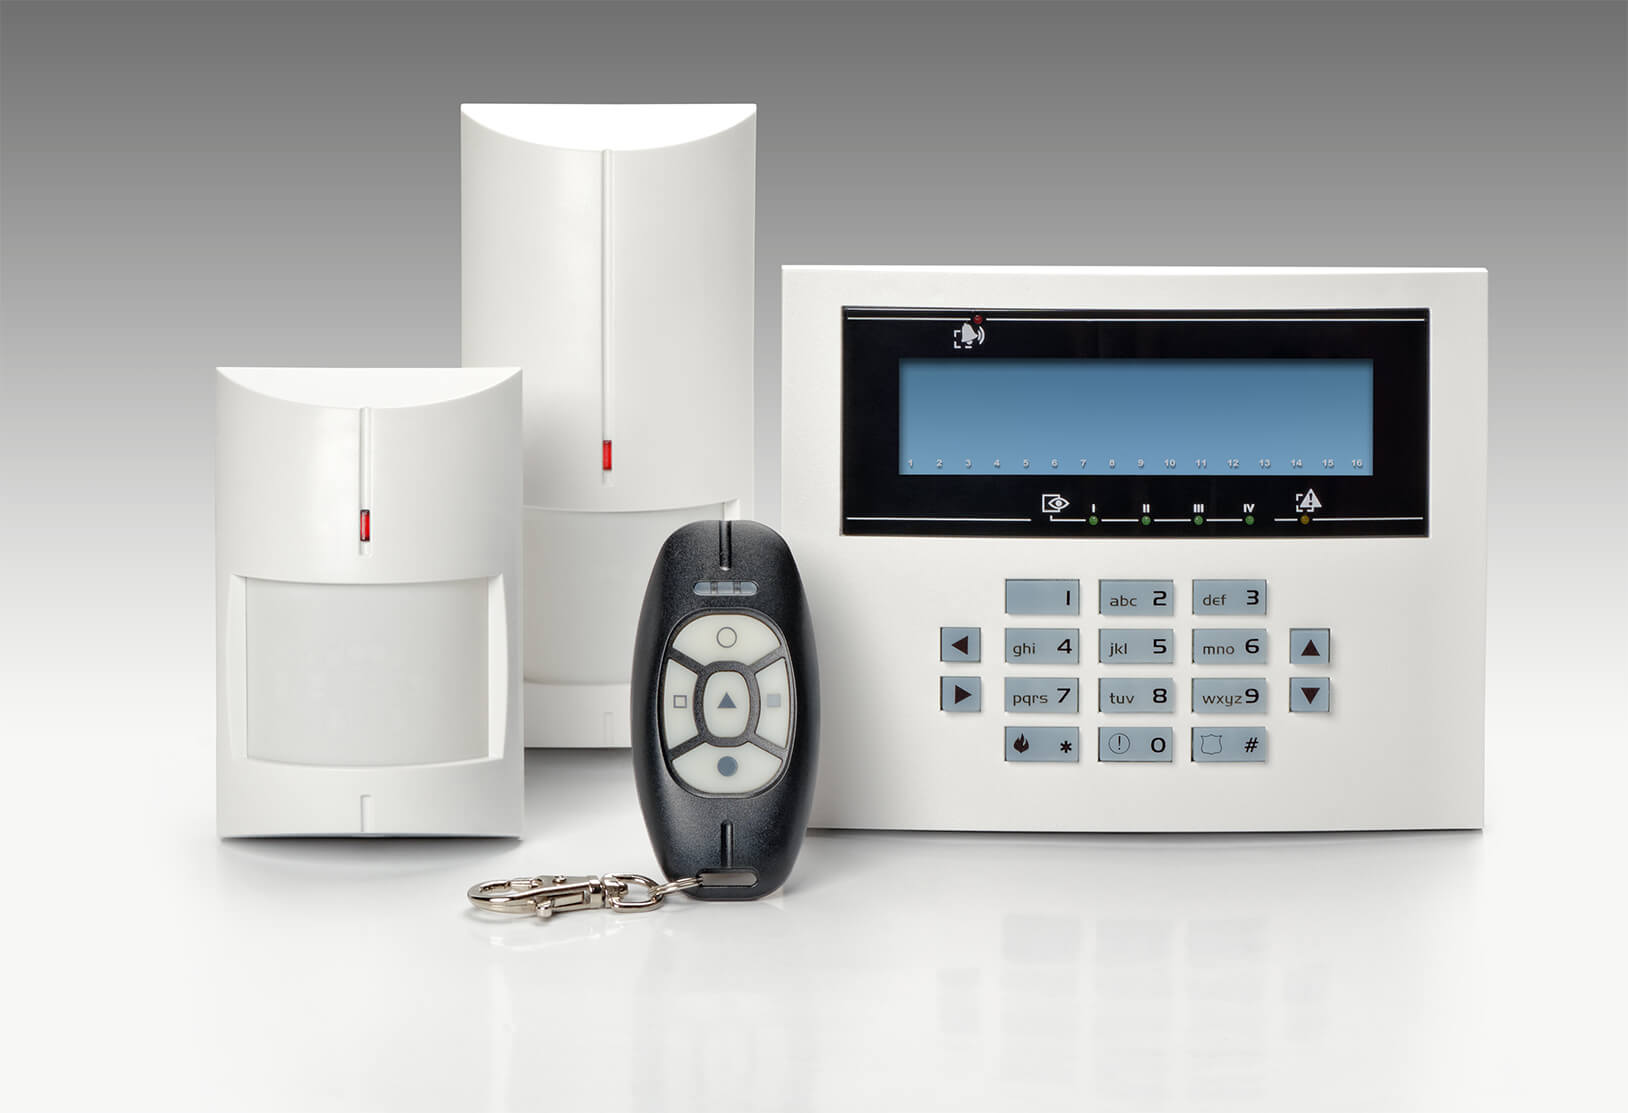 Commercial Burglar Alarms For Business in Brompton SW1  - Local Brompton SW1 burglar alarm company.Call 02078872244 - Dedicated to Safety & Security. Companies, shops and homes ..